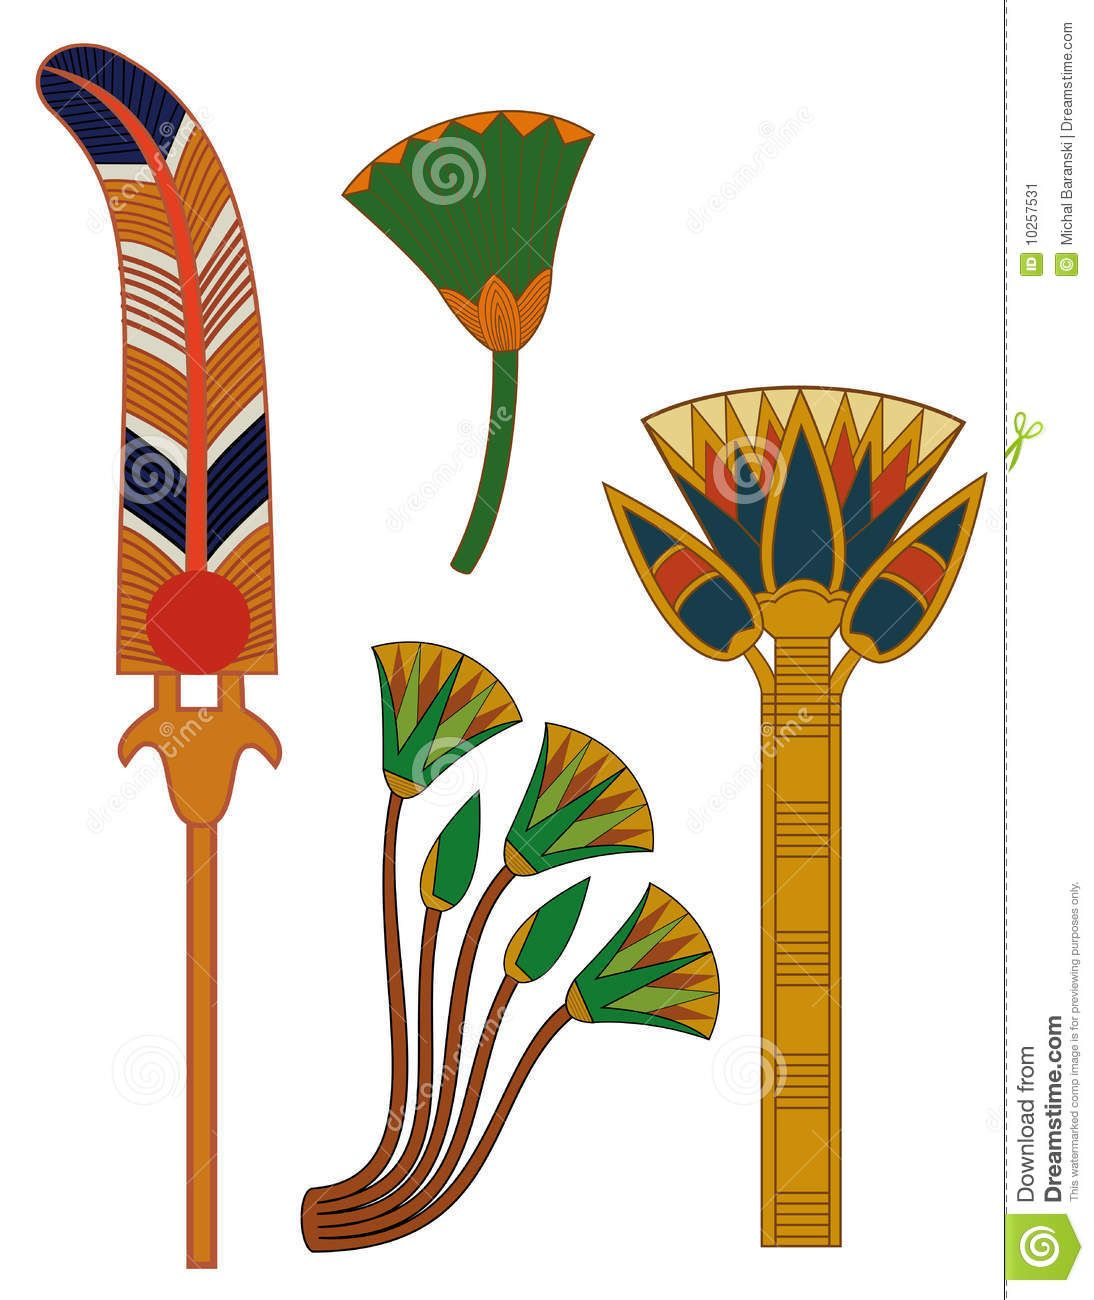 Ancient egyptian lotus egypt ornament lotus flowers stock image ancient egyptian lotus egypt ornament lotus flowers stock image image 10257531 mightylinksfo